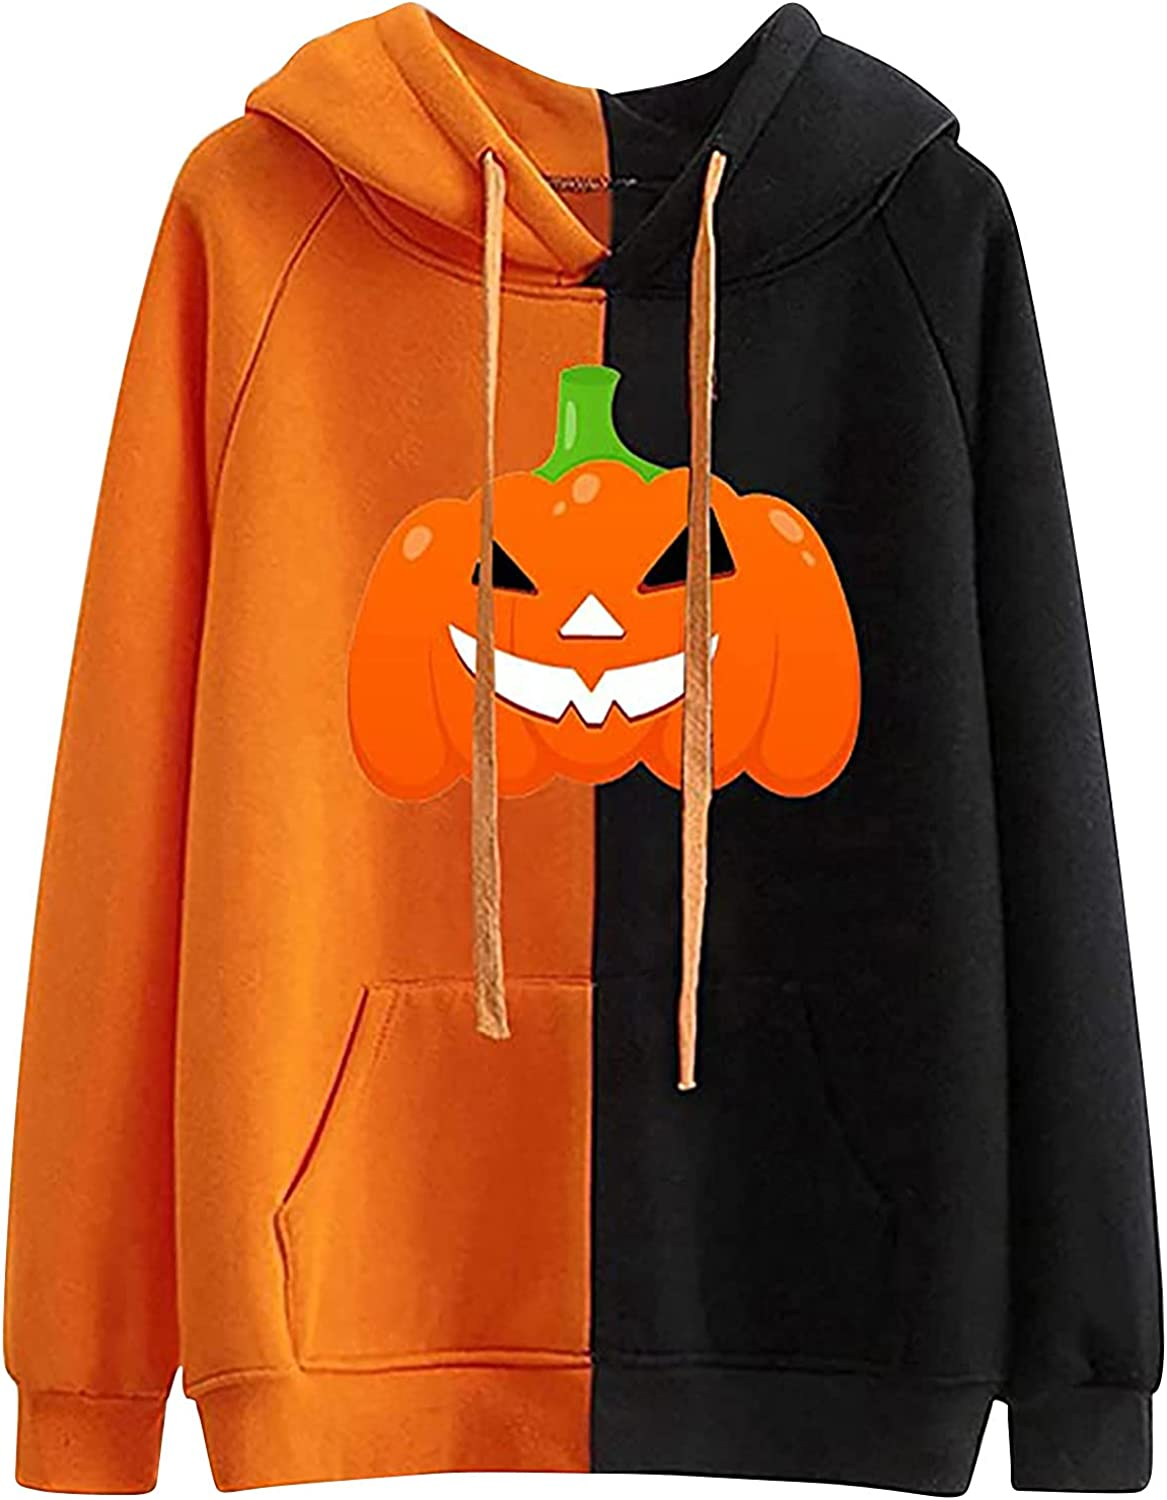 Pumpkin Smile Face Print Hoodies For Women Halloween Color Stitching Sweatshirt Casual Long Sleeve Pockets Pullover